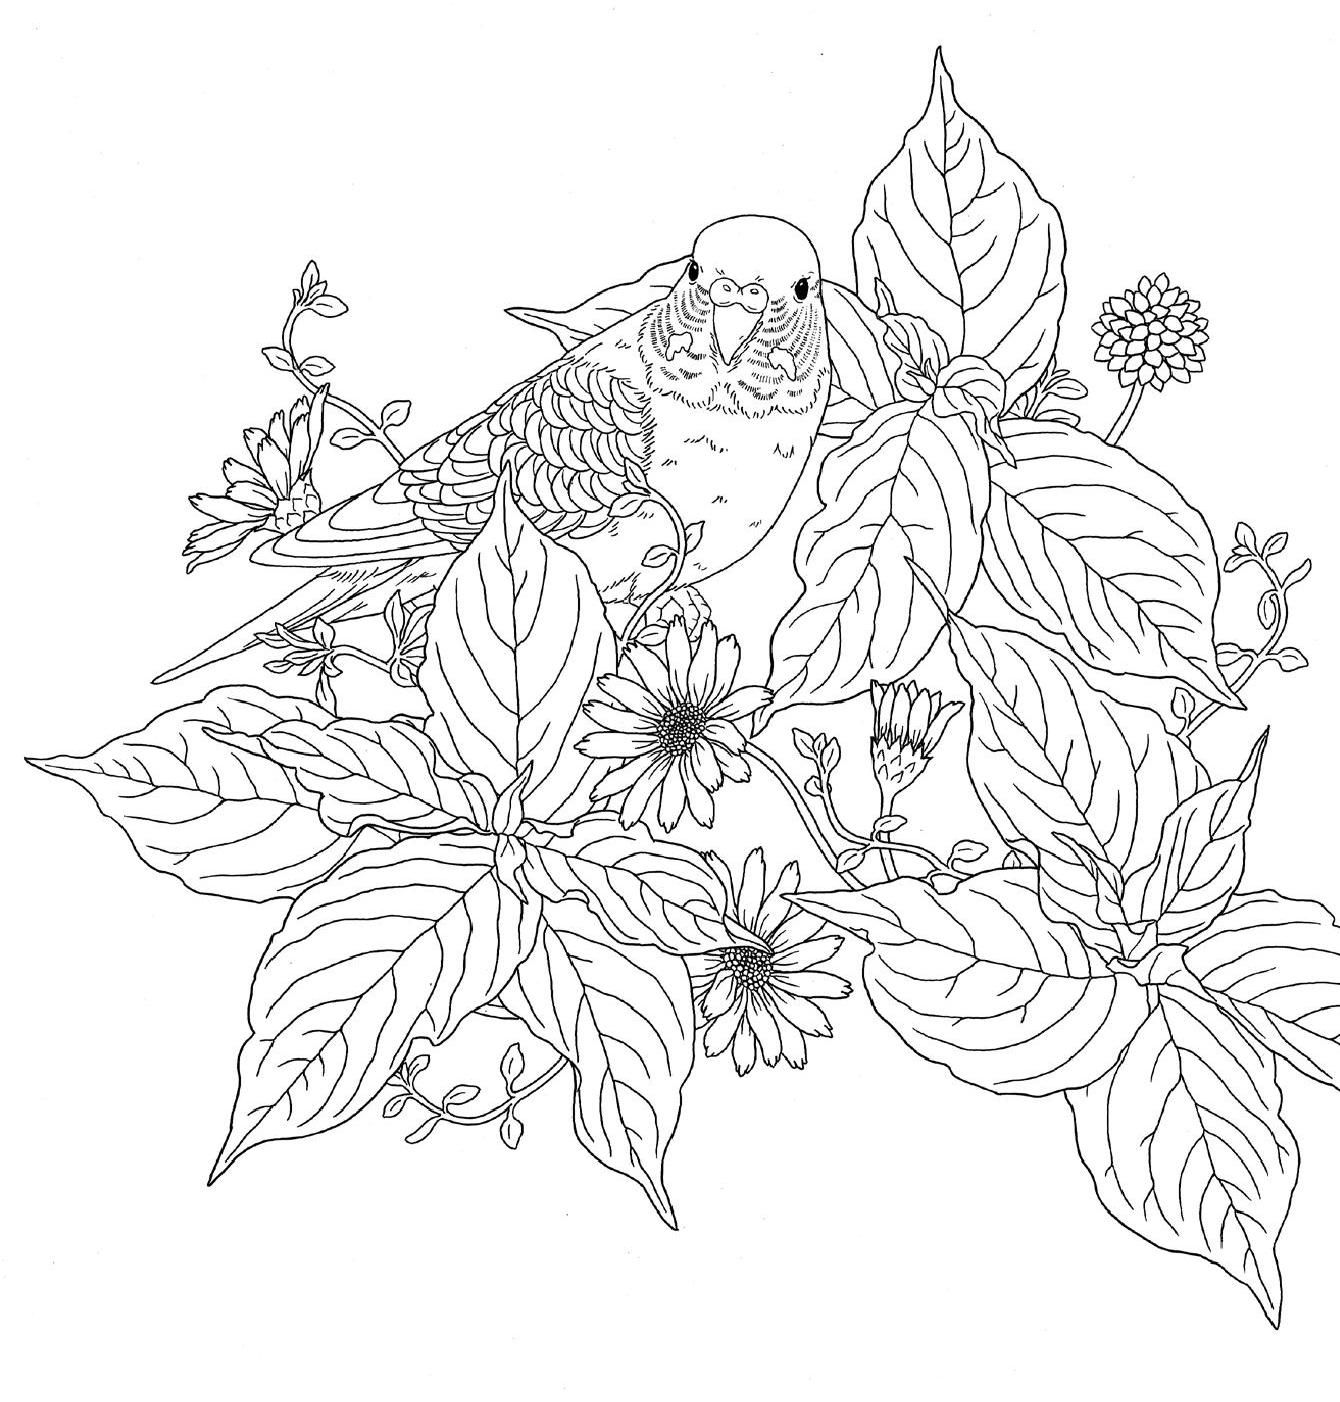 Harmony of nature adult coloring and newspaper